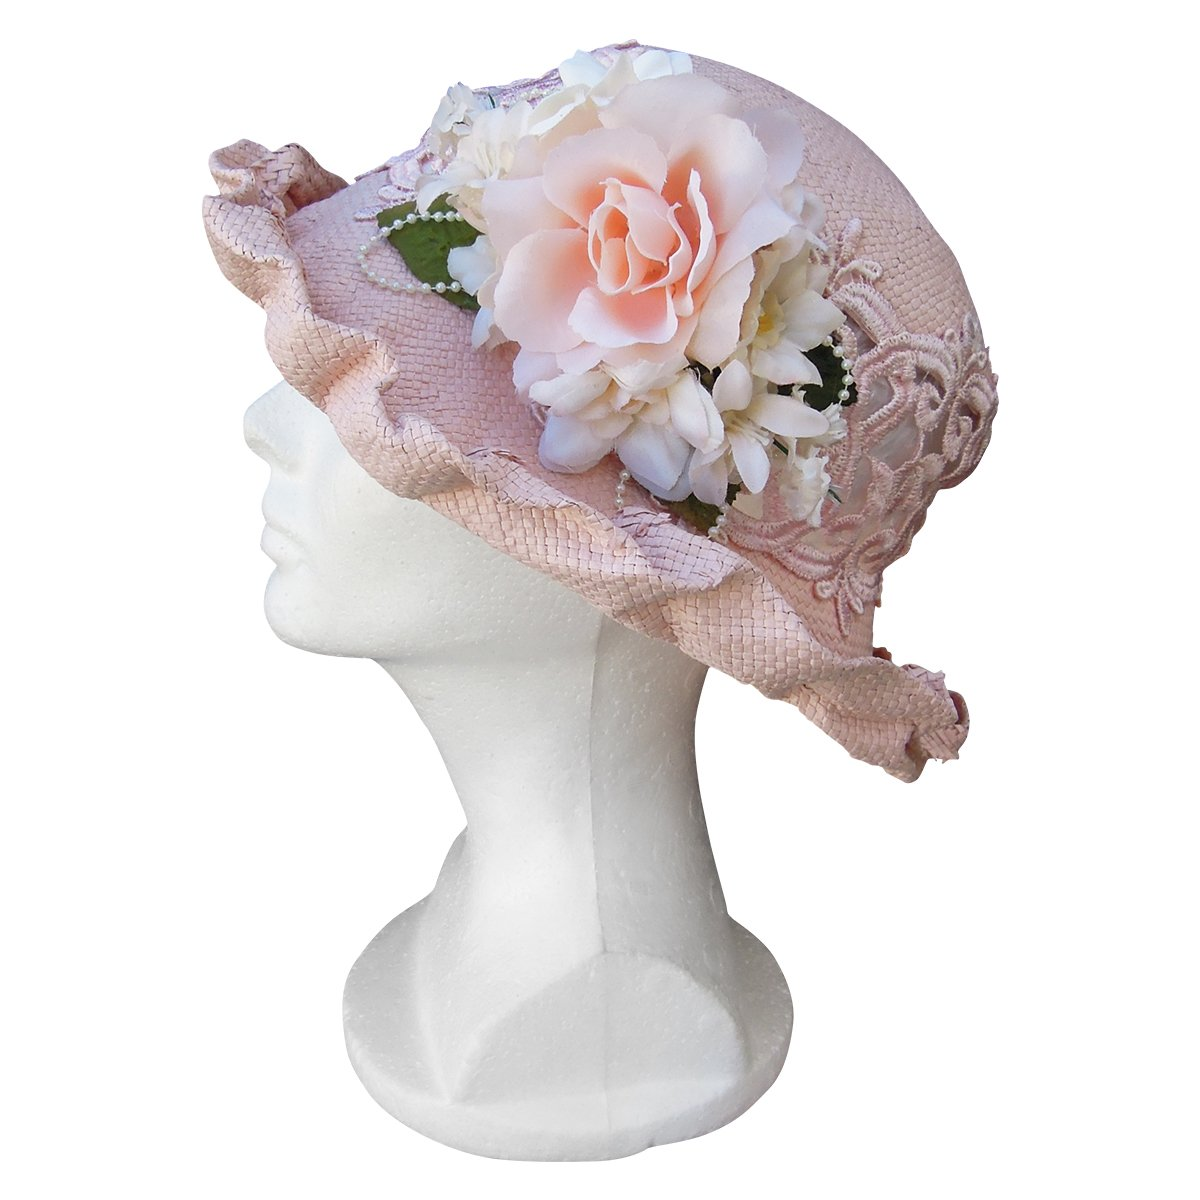 1920s Accessories | Great Gatsby Accessories Guide  Lace Straw Cutaway Hat Narrow Brim Ladies Cloche Church $45.00 AT vintagedancer.com